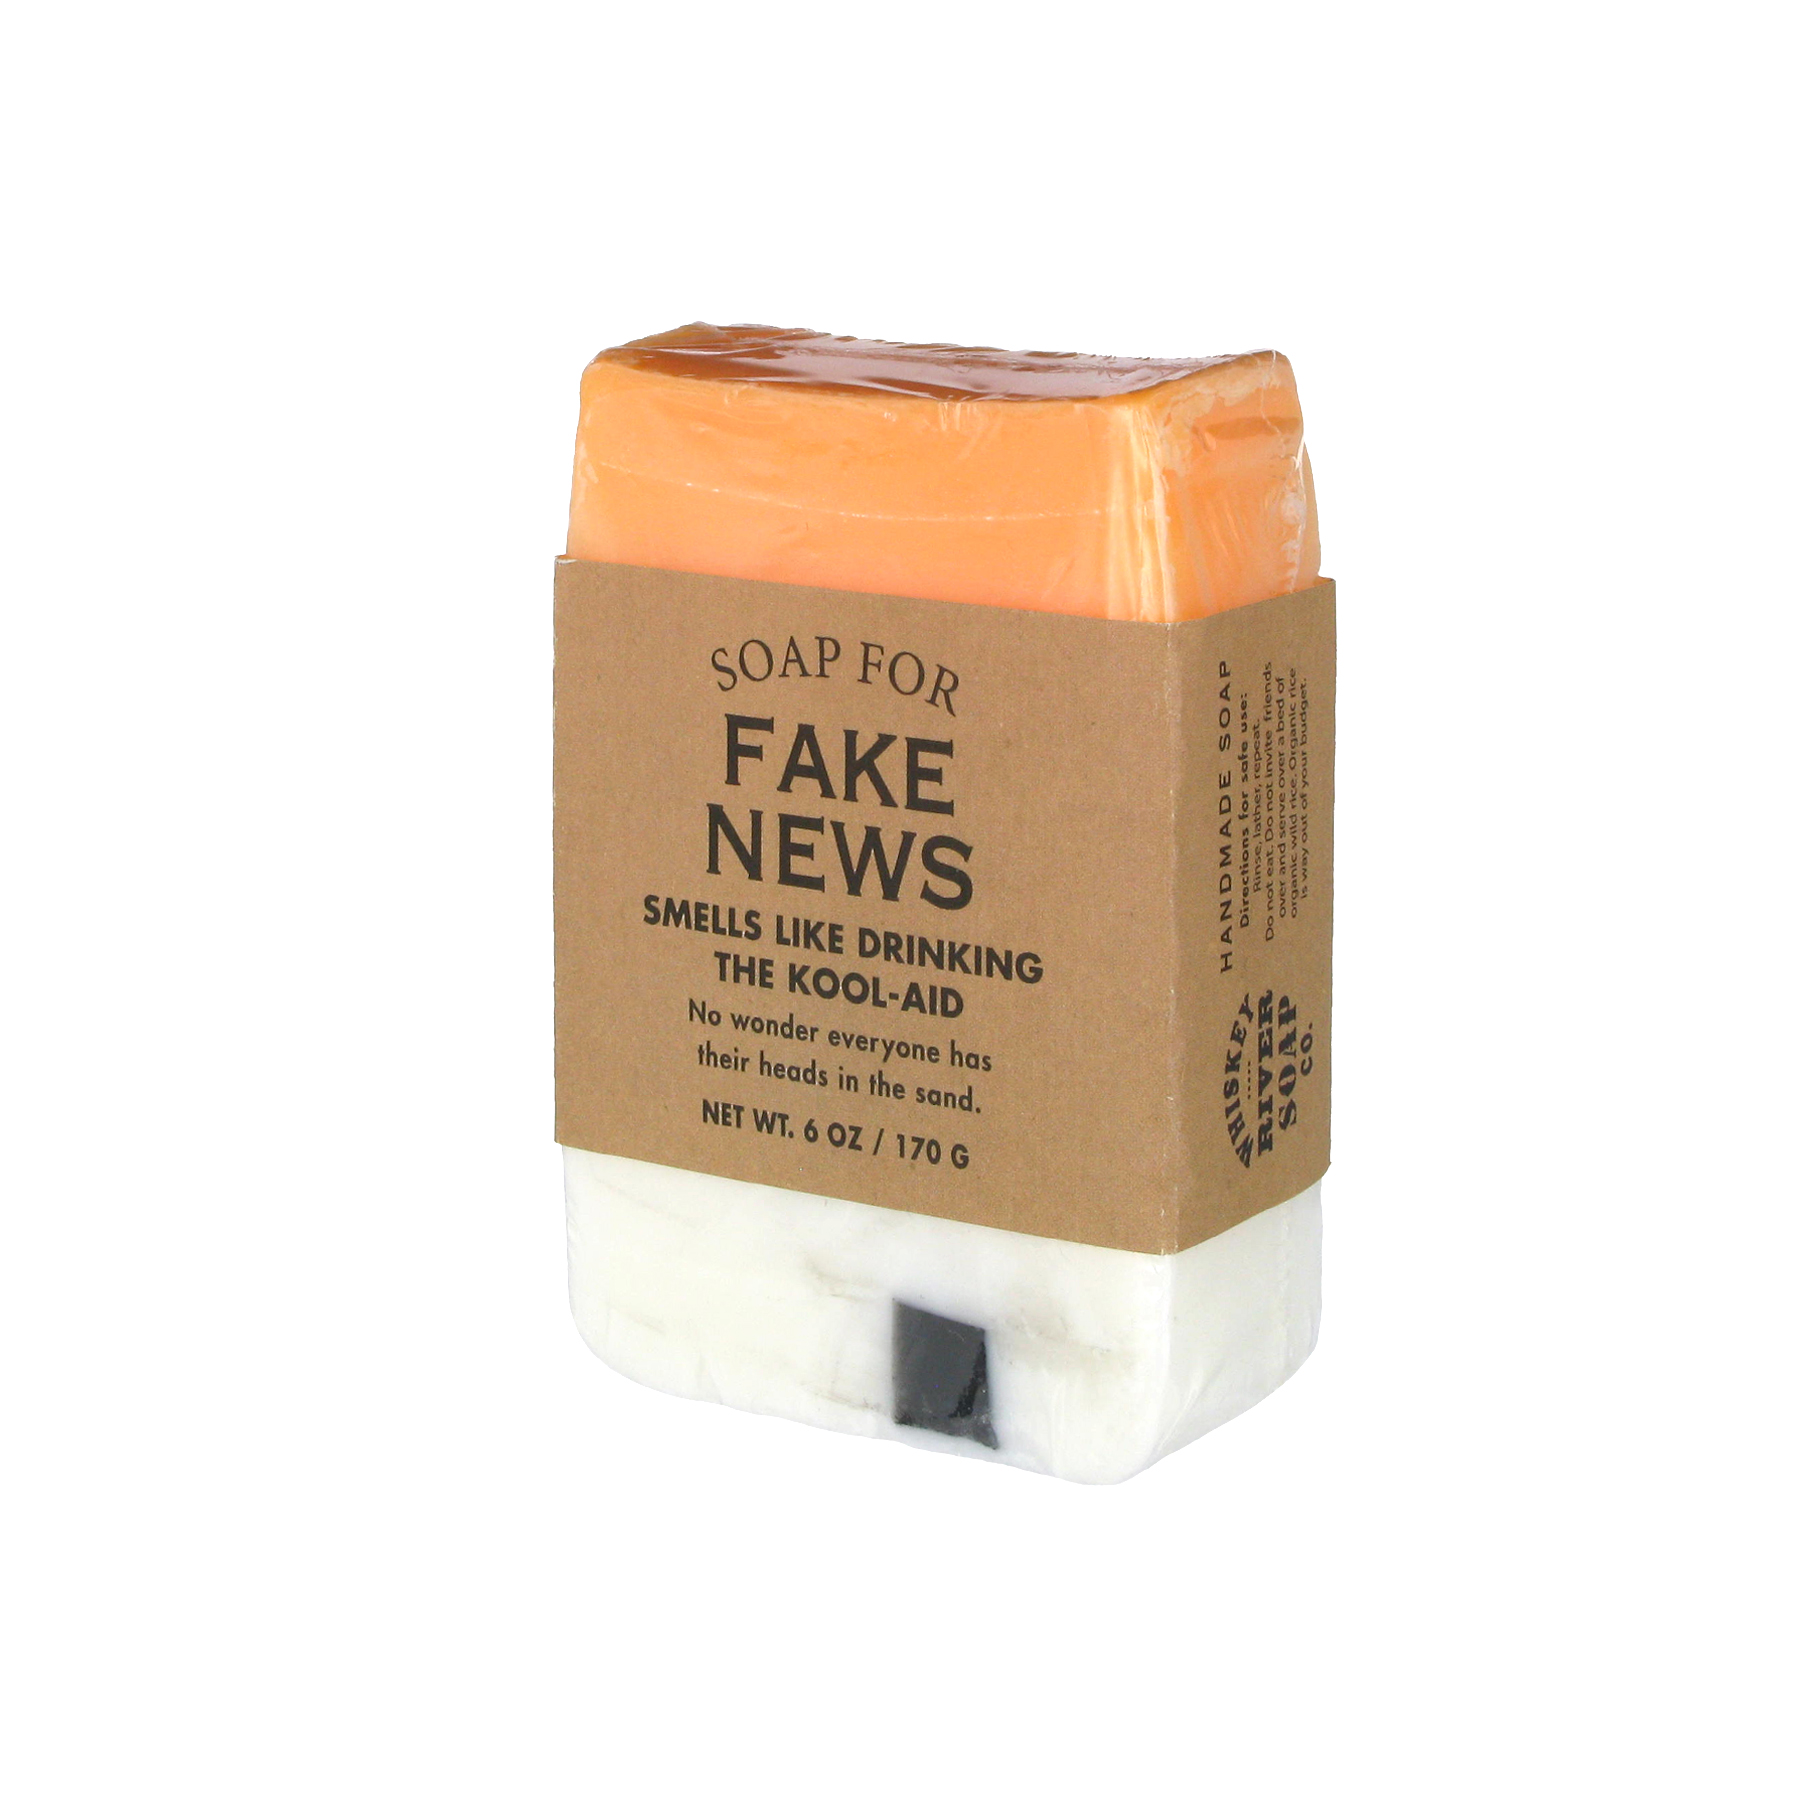 Fake News soap